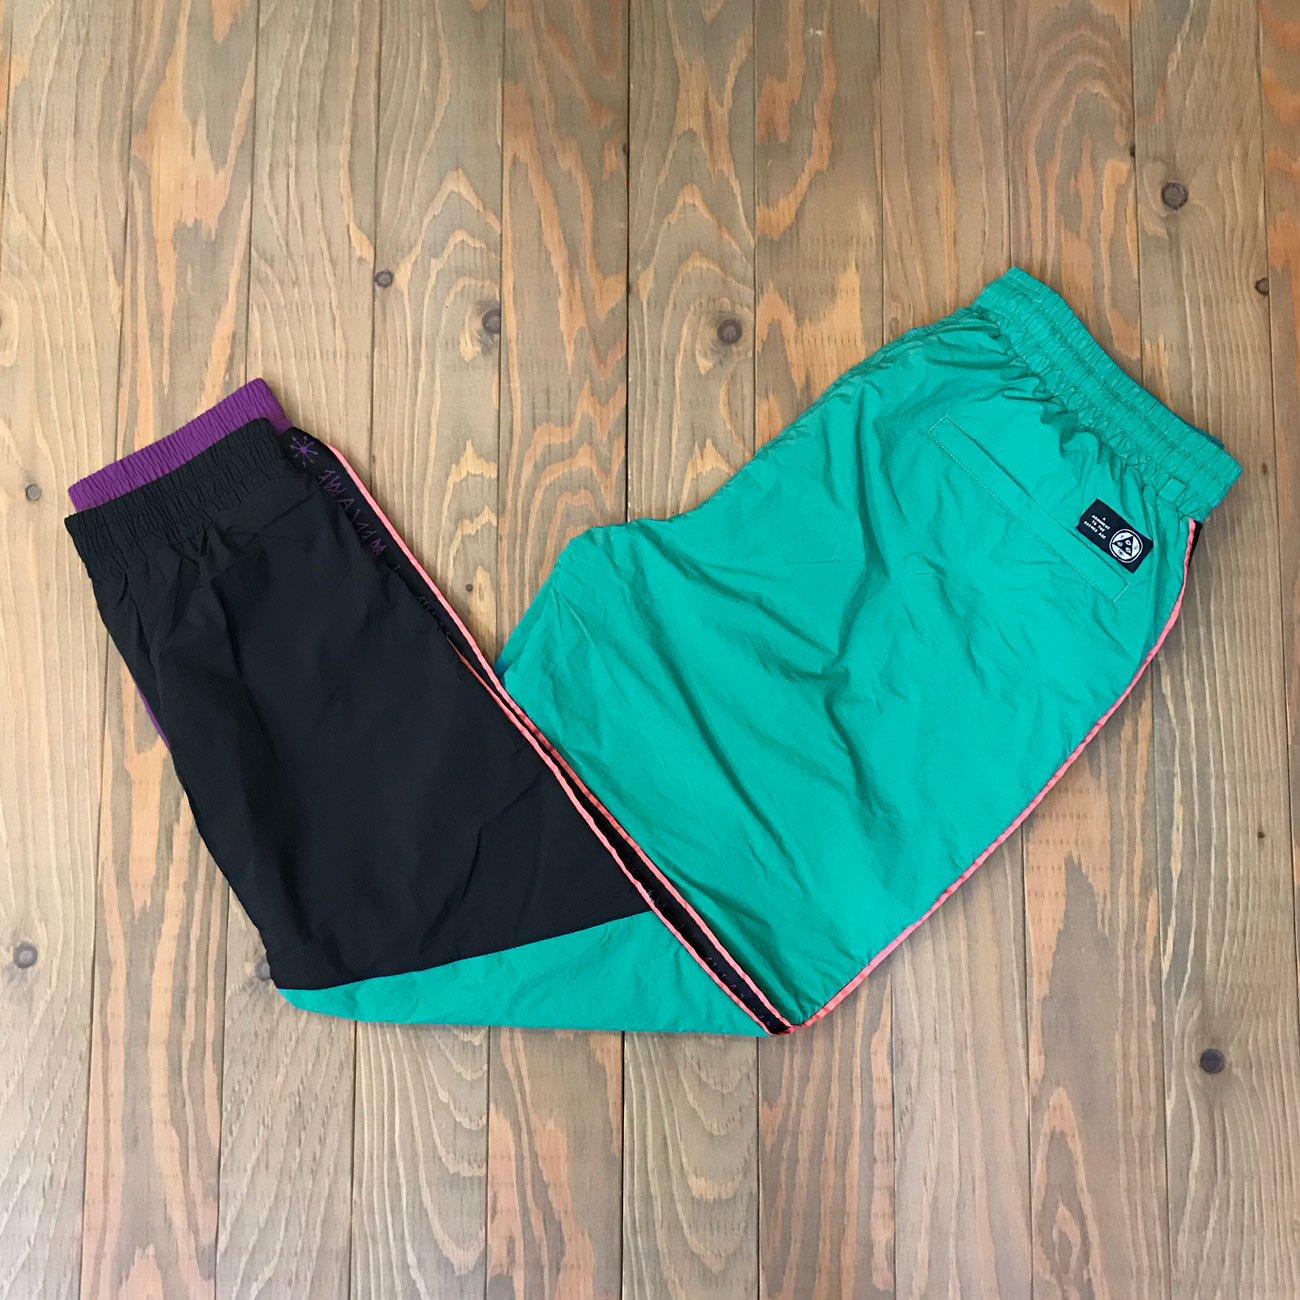 WELCOME ATHLETE NYLON WIND PANT TEAL/BLACK/PURPLE